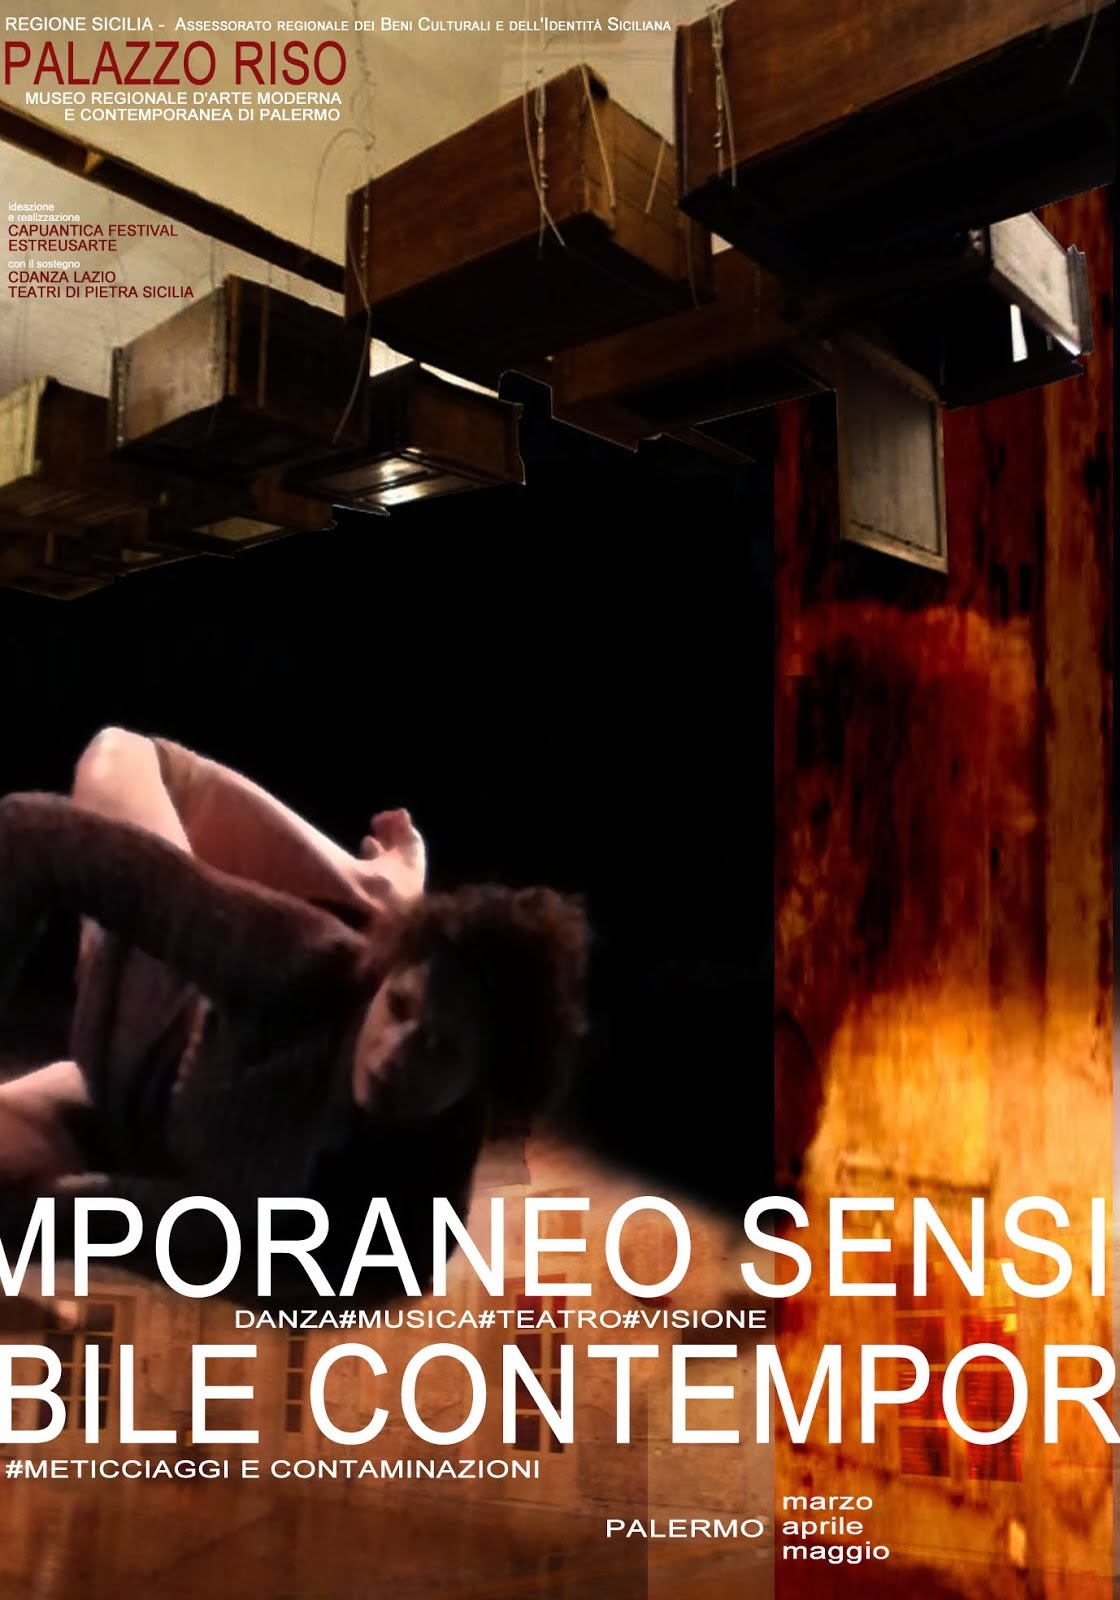 CONTEMporaneo SENsibile